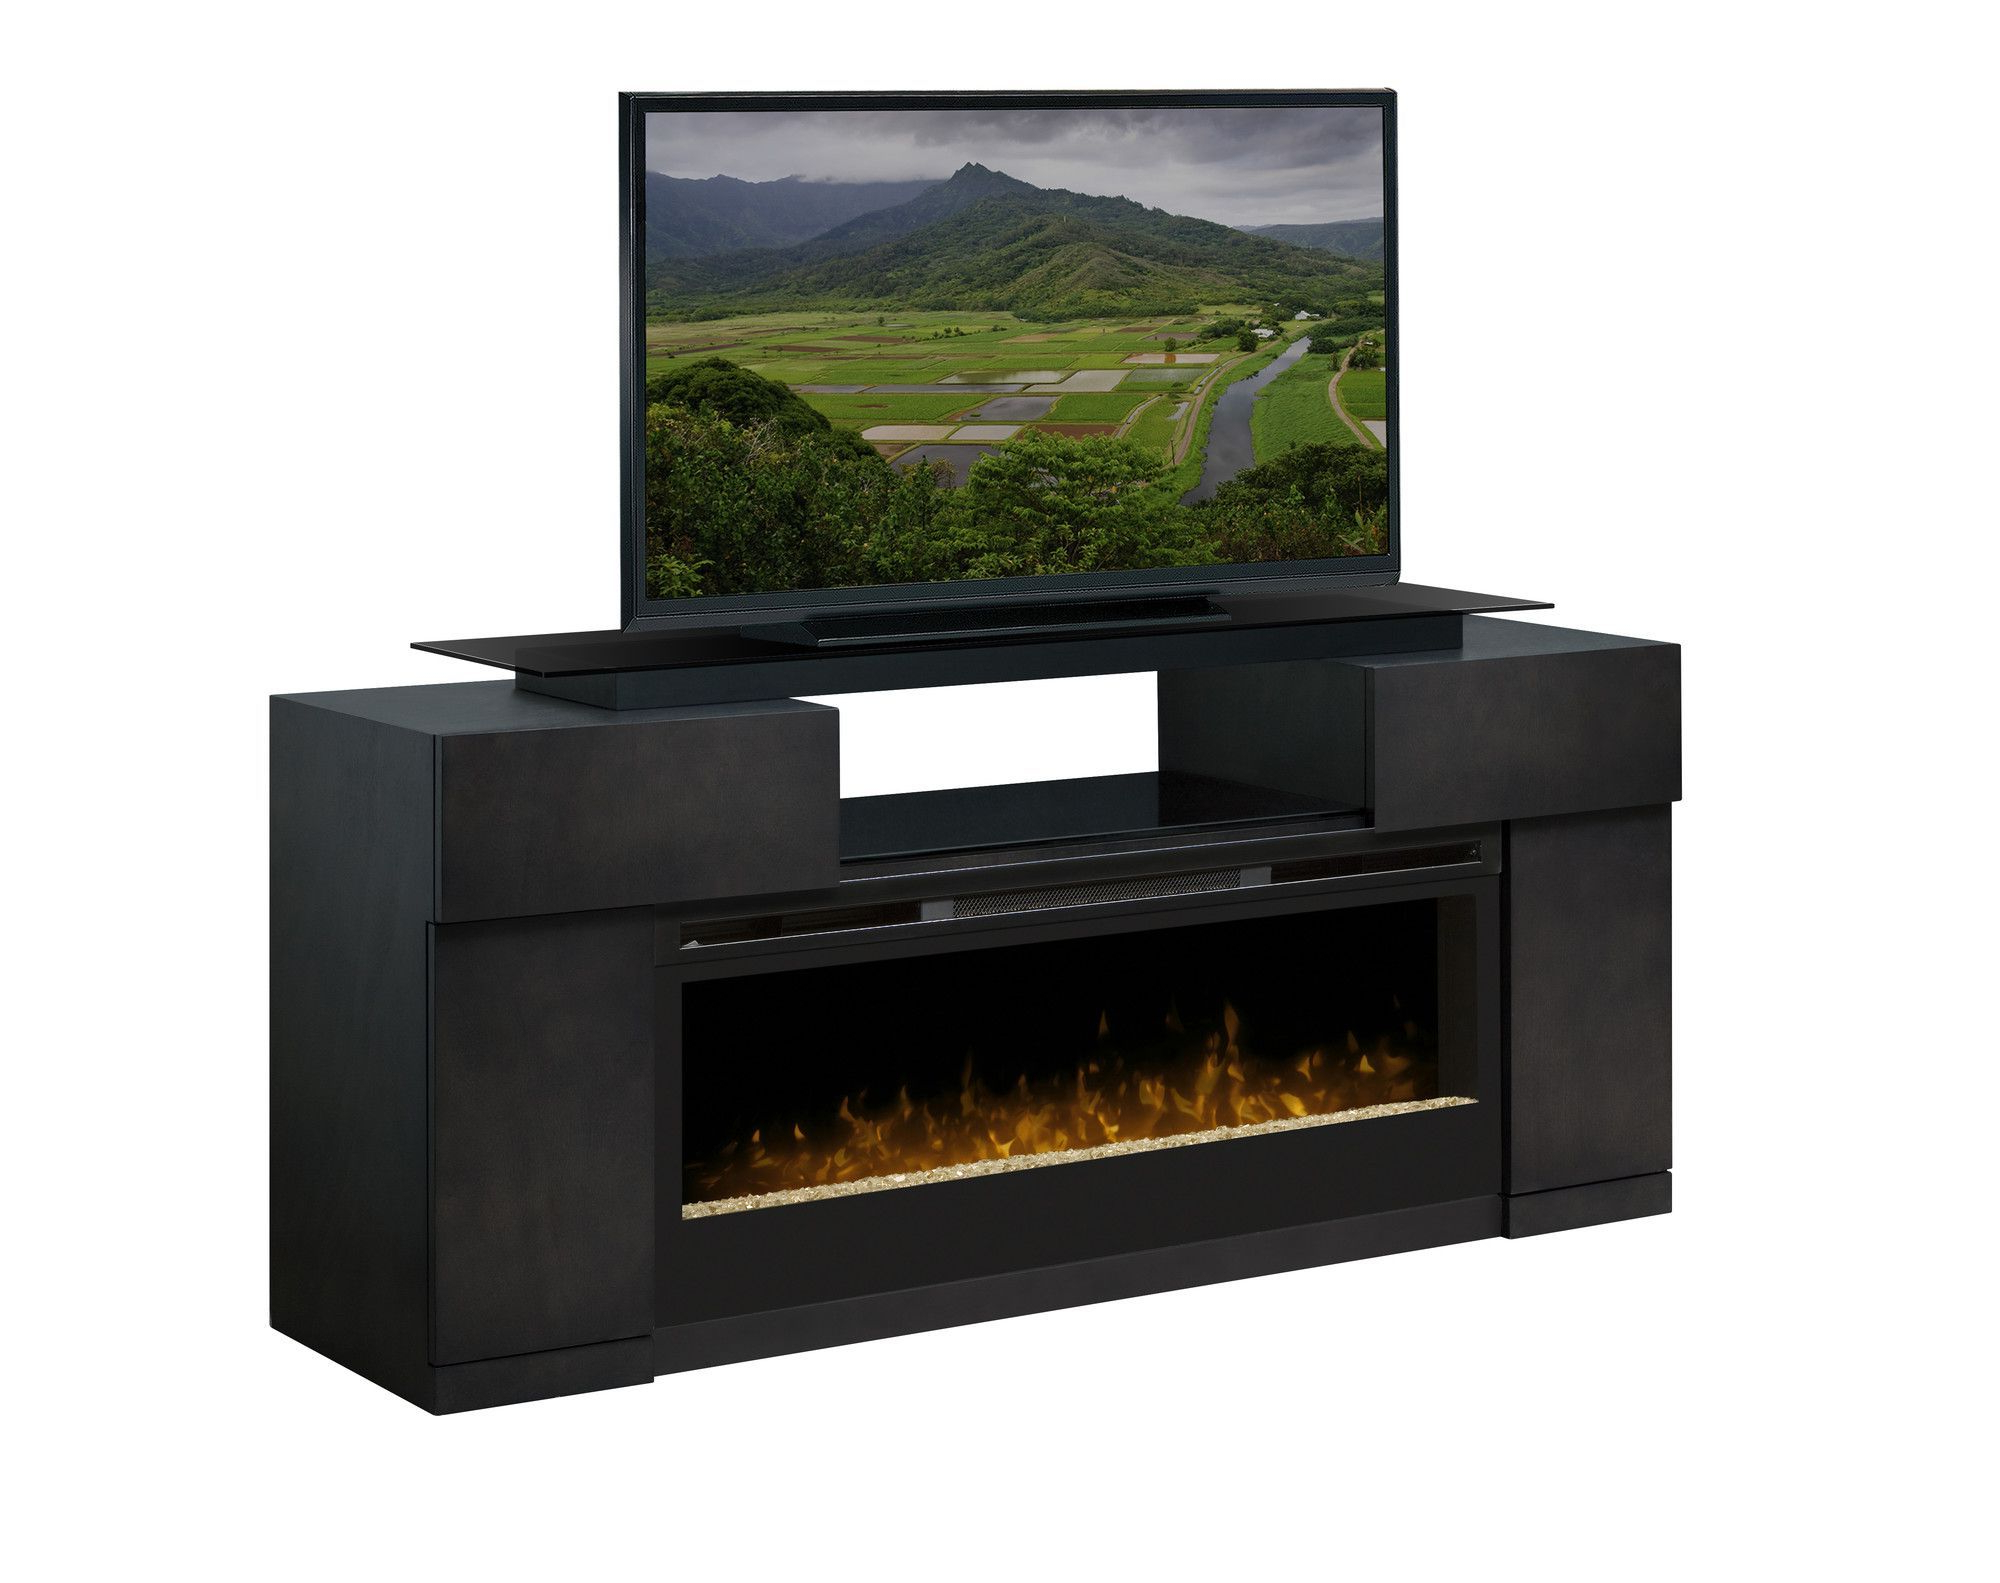 """Tv Stand For Tvs Up To 78 Inches With Fireplace Included Pertaining To Most Recent Chicago Tv Stands For Tvs Up To 70"""" With Fireplace Included (View 20 of 25)"""